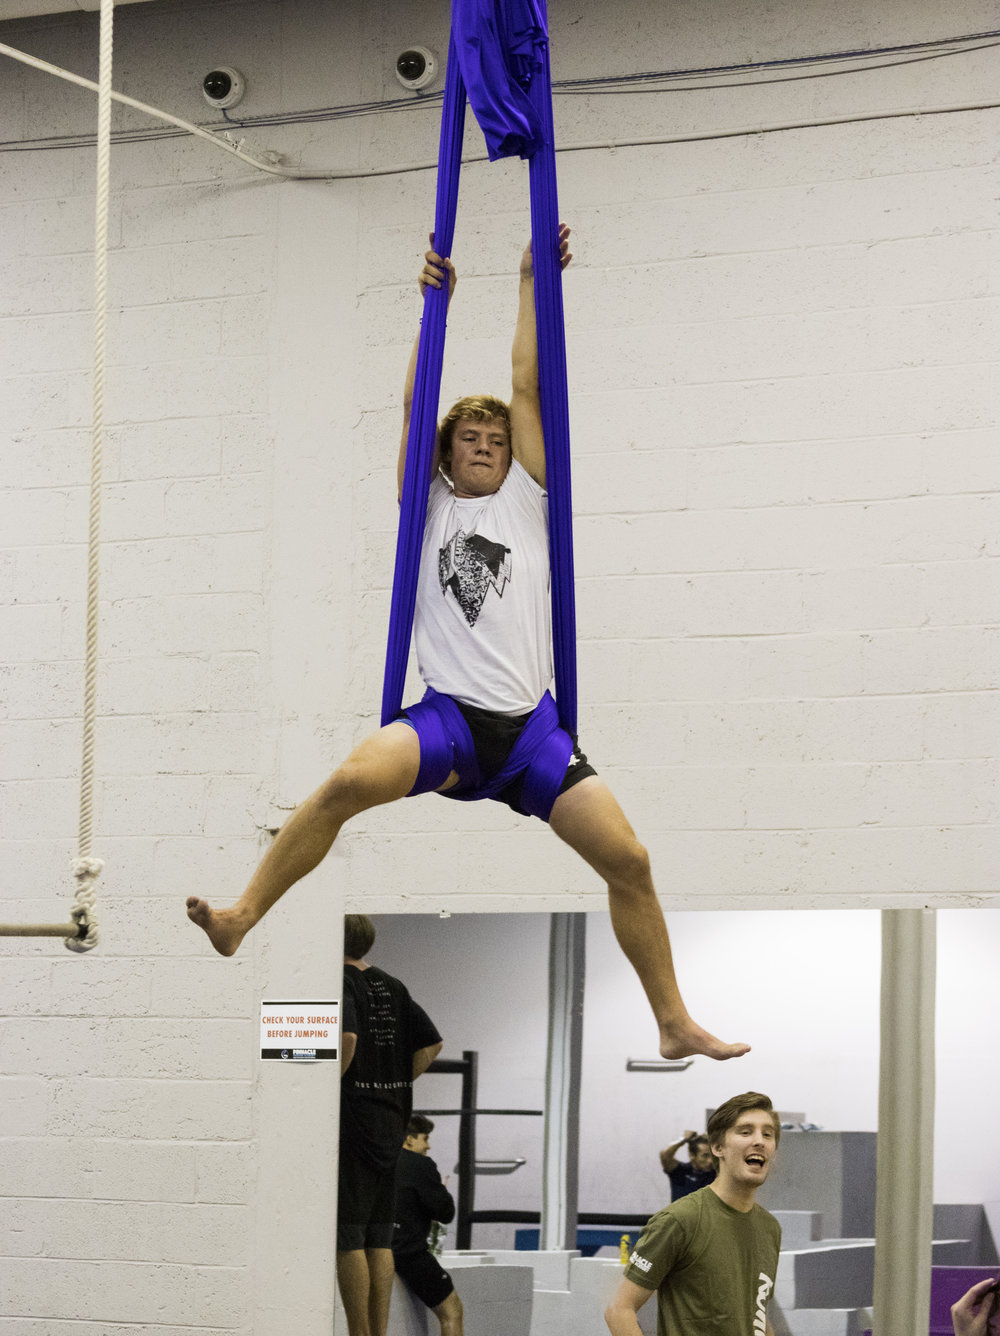 Aerial Silks is for Everyone!